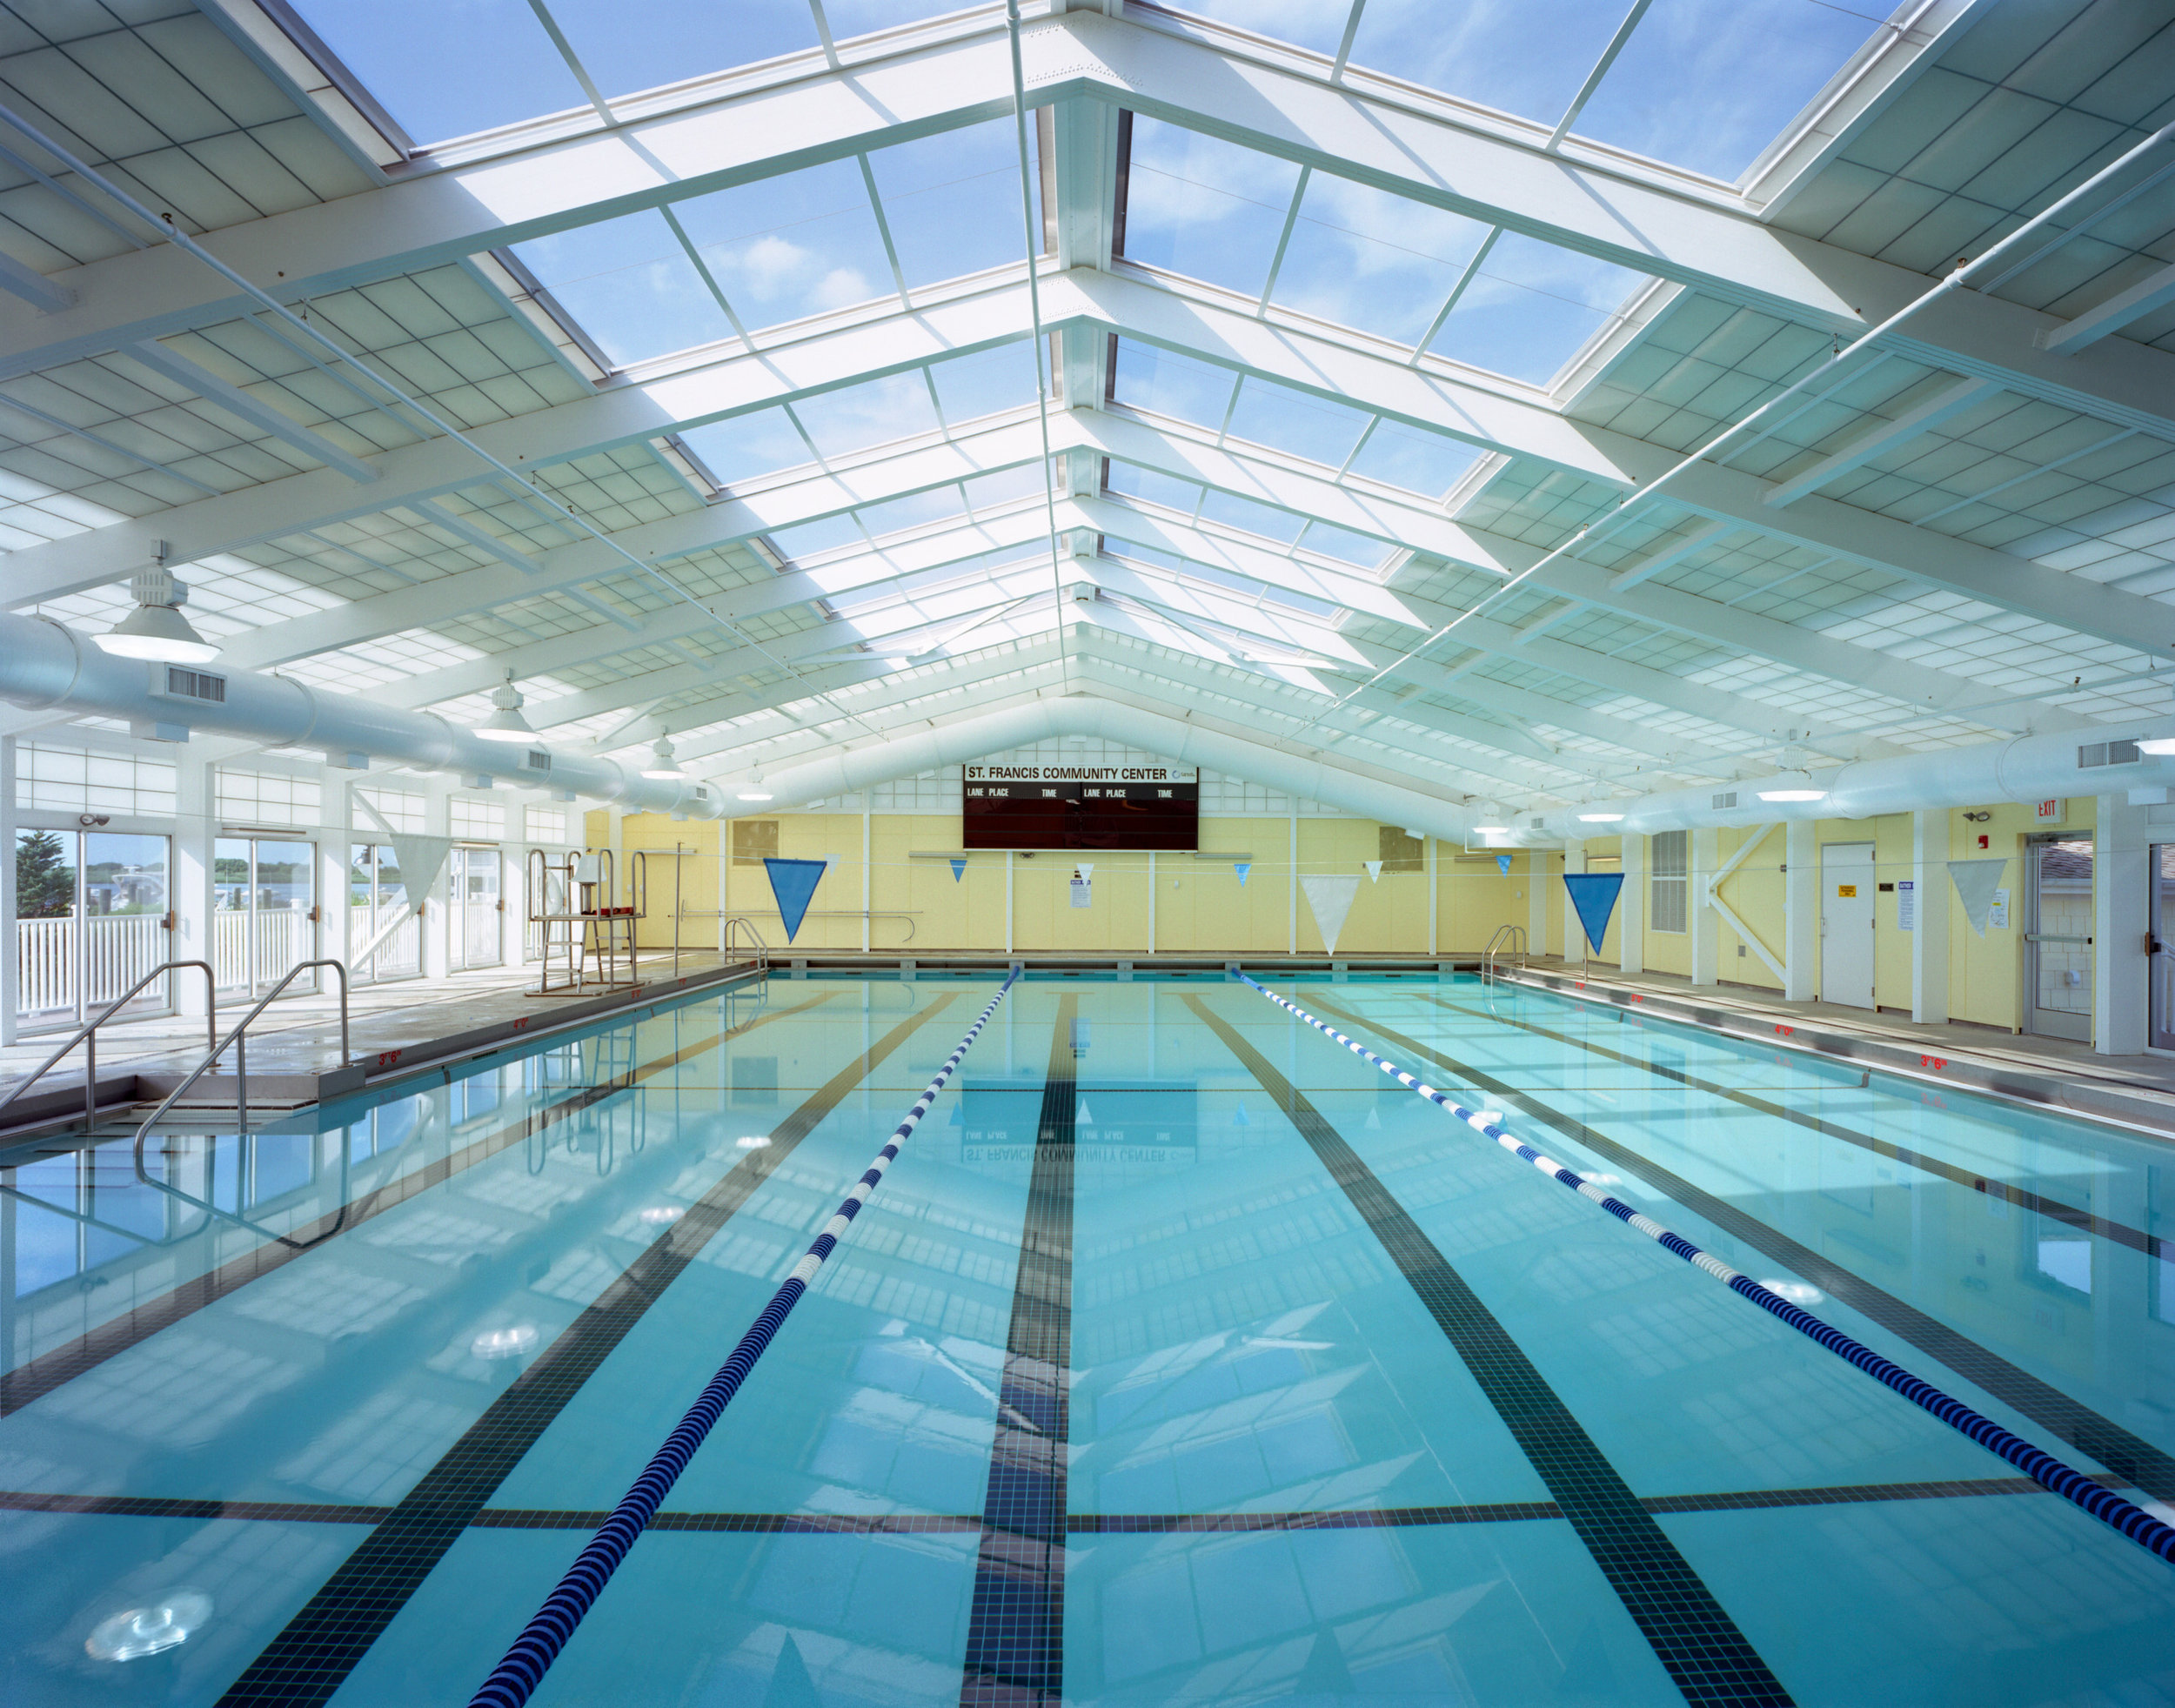 This indoor pool comes complete with sunroof.